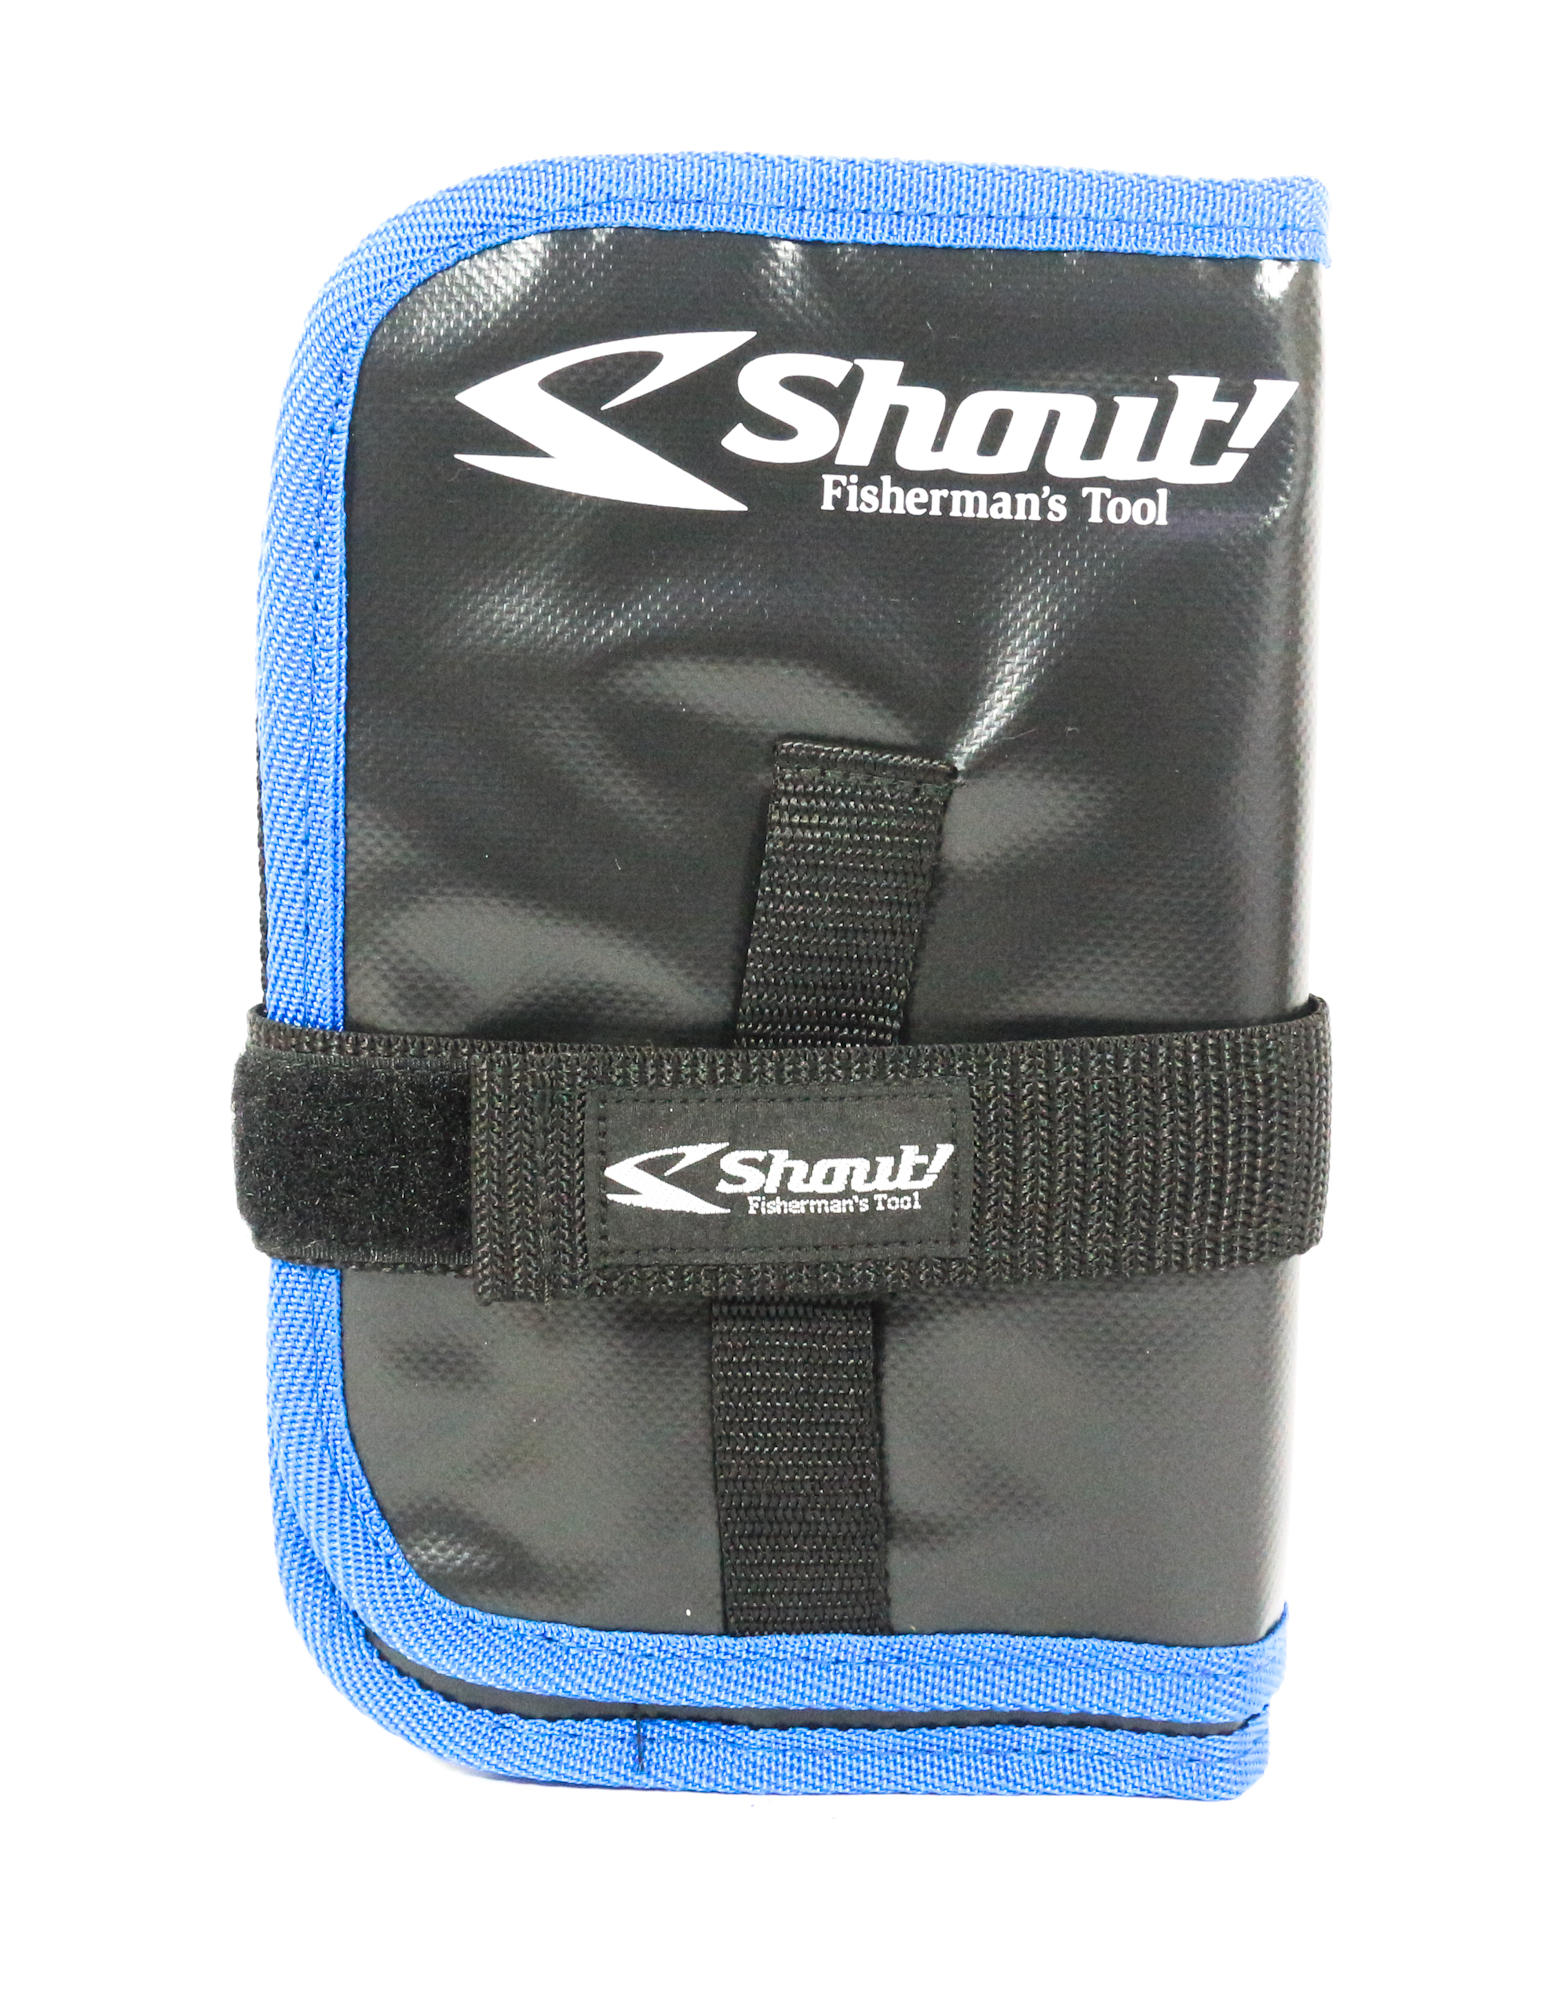 Shout 547-AL Adjustable Jig Roll Bag Size L up to 28cm Jigs Blue (0253)